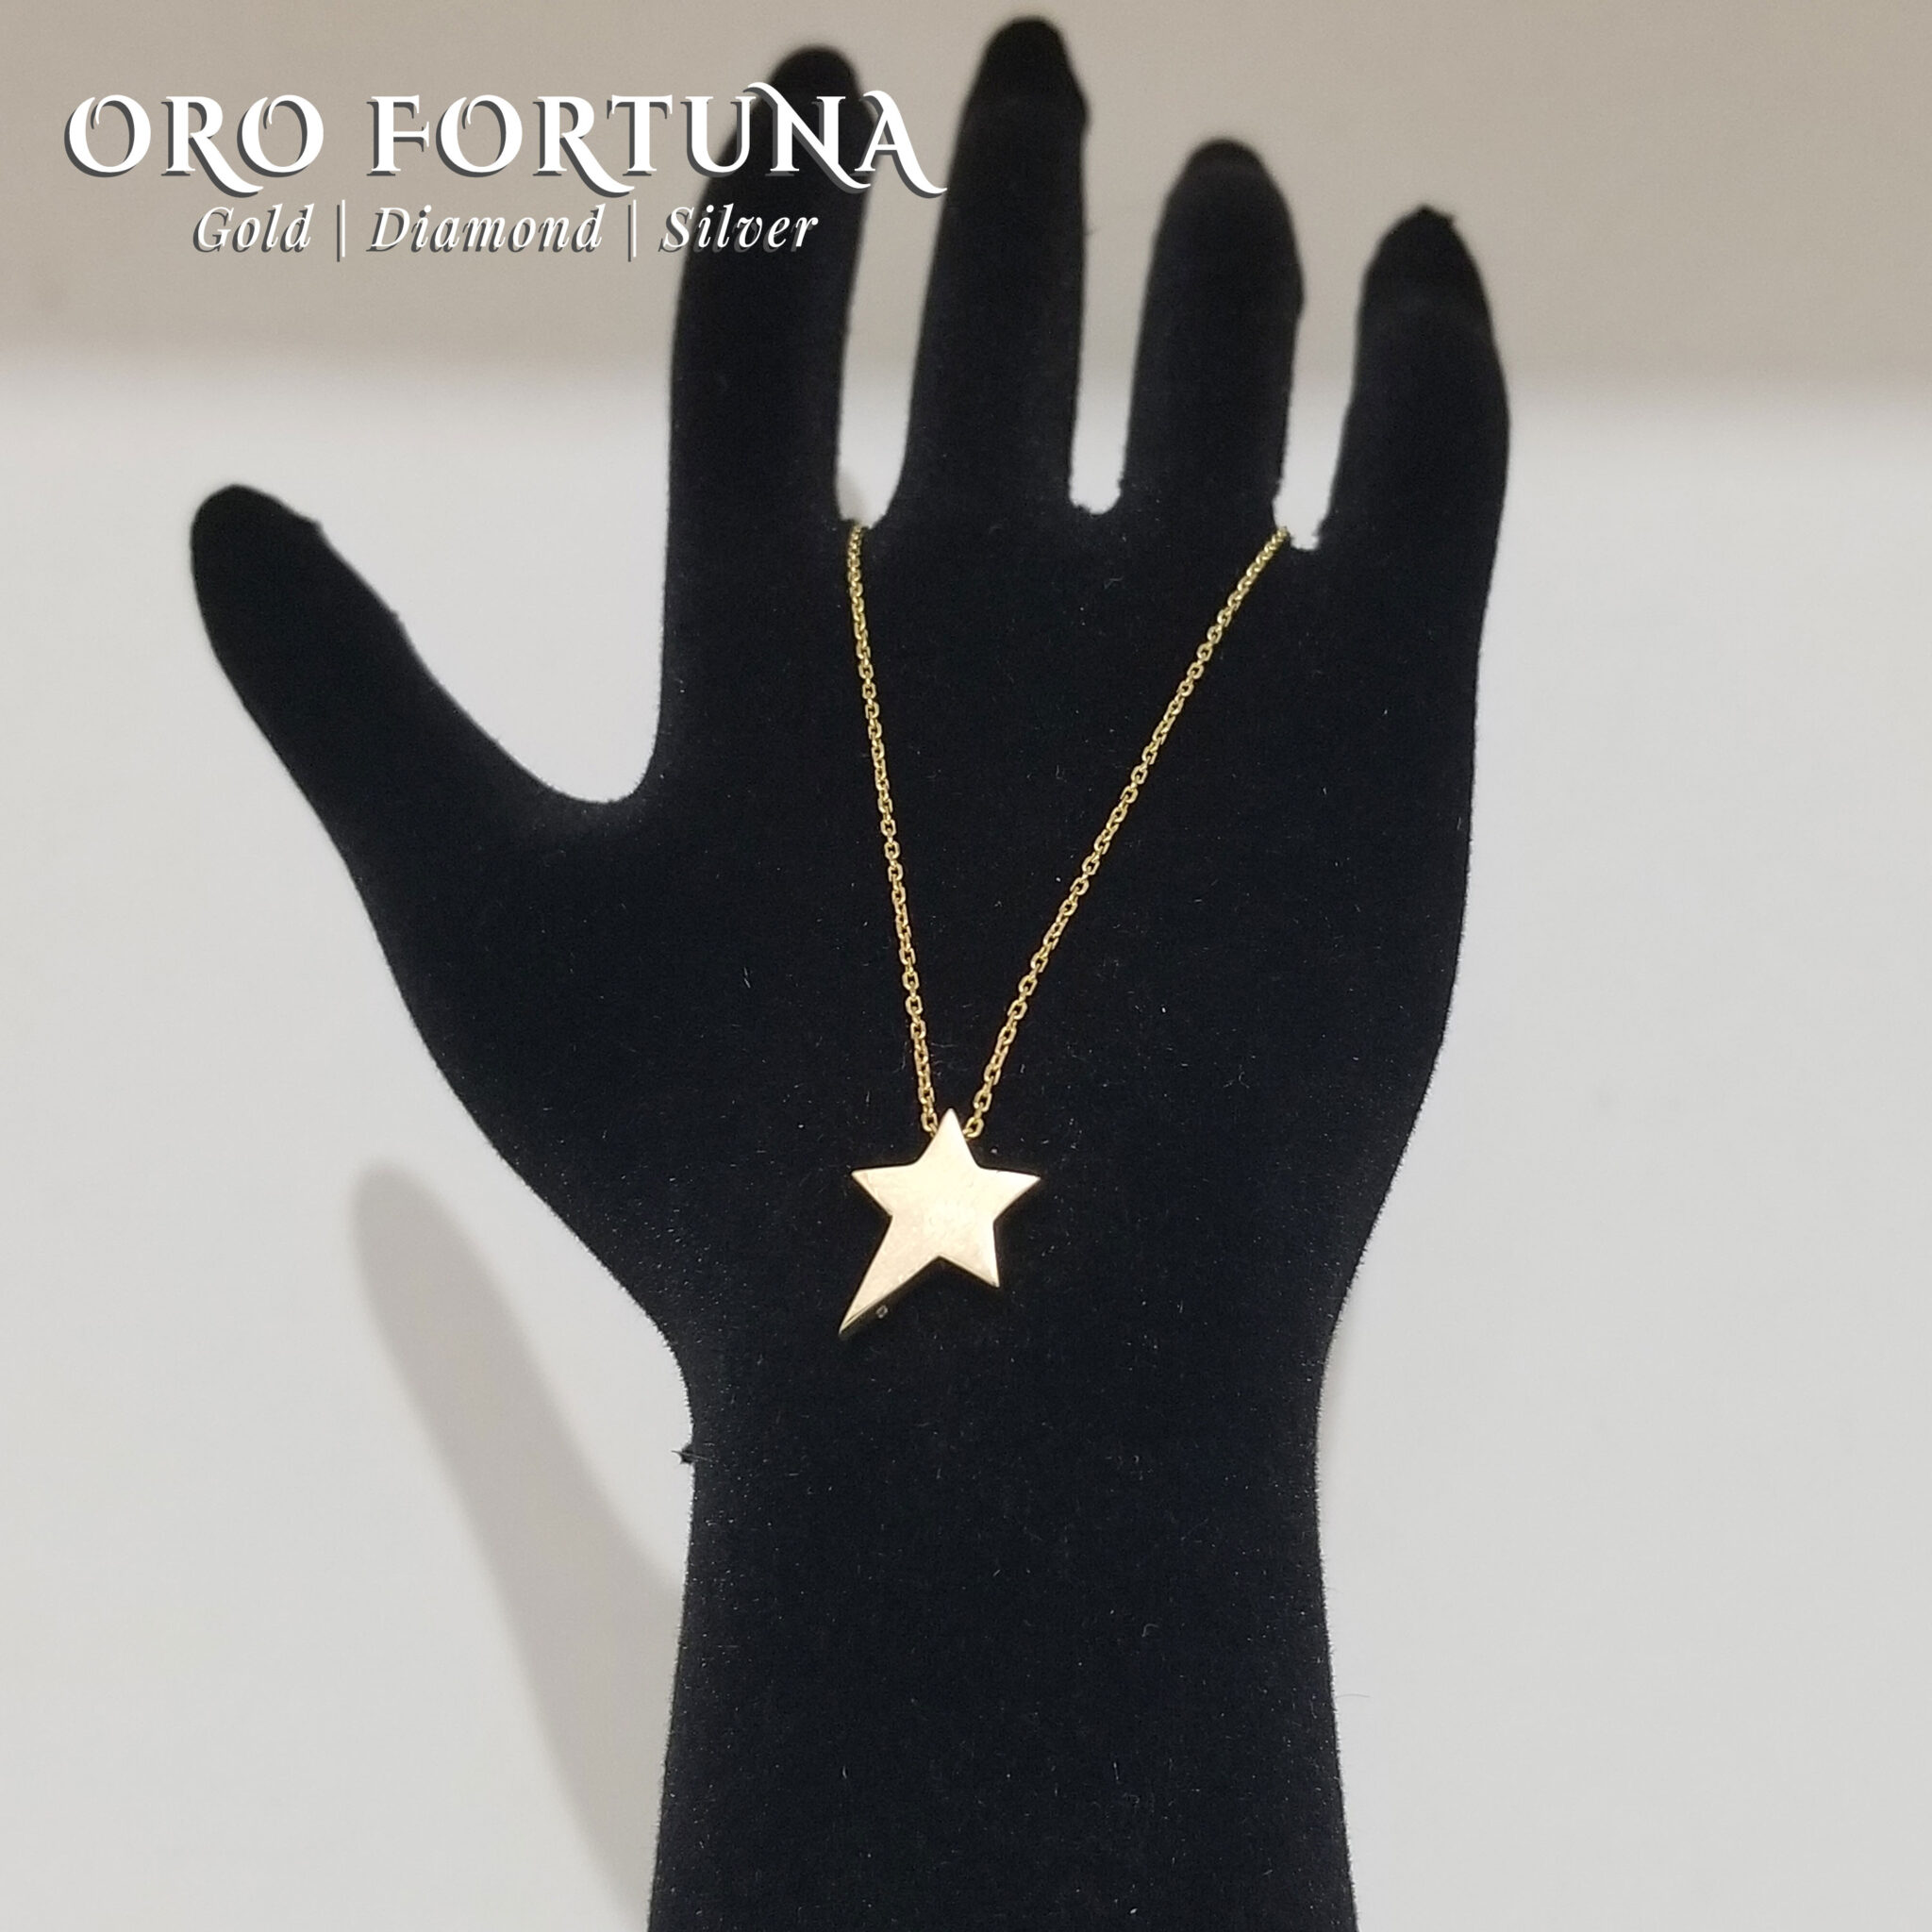 21K Yellow Gold Plain Star Necklace Women Gift for Each Fine Fashion Trendy Minimalistic Dainty Fashionable